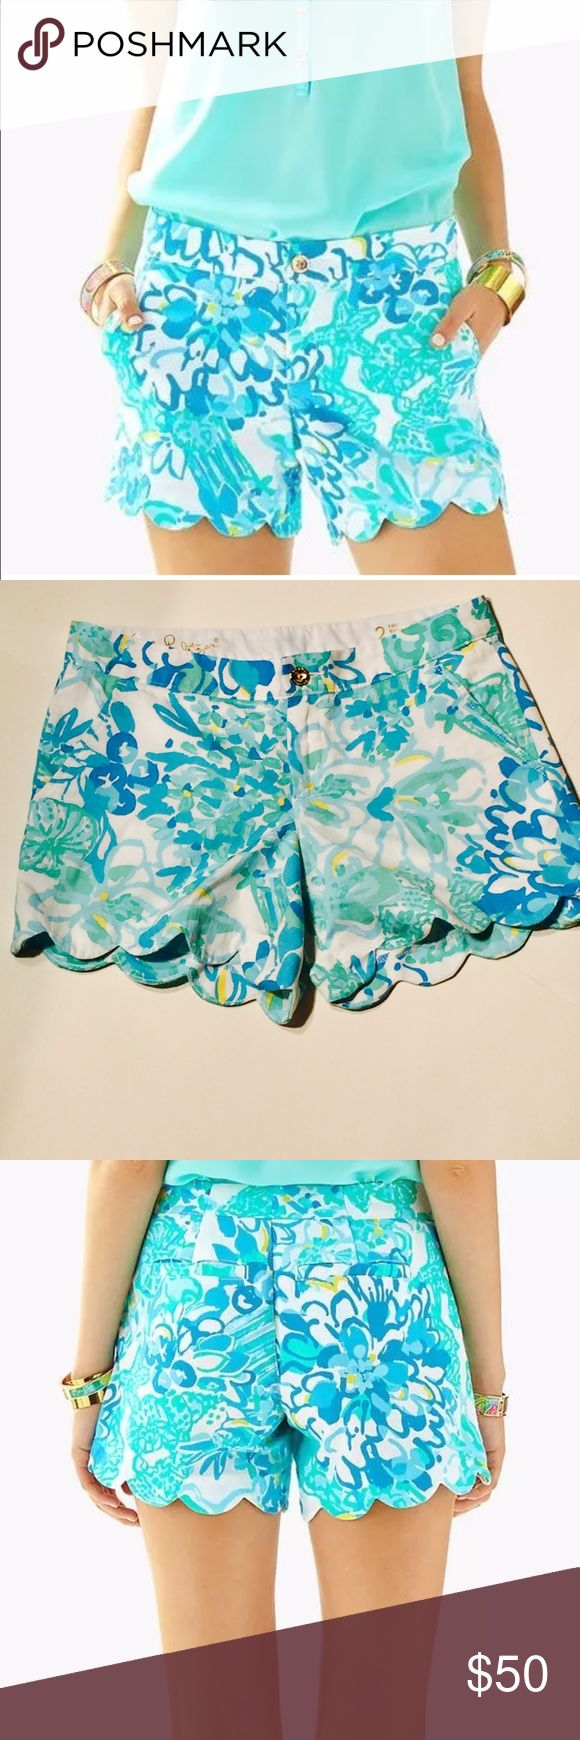 "Lilly Pulitzer Buttercup shorts Lilly Pulitzer  Buttercup Shorts - ""Resort White In A Pinch""The scalloped hem begs to be paired with fun wedges for a little lift!   In Jumbo Pique fabric:  The vibrant prints promise to stay just as bright as the day you brought them home no matter how many times you wash it  5"" Inseam, Garment Washed, Zip Fly Short With Scallop Hem. Lilly Pulitzer Shorts"